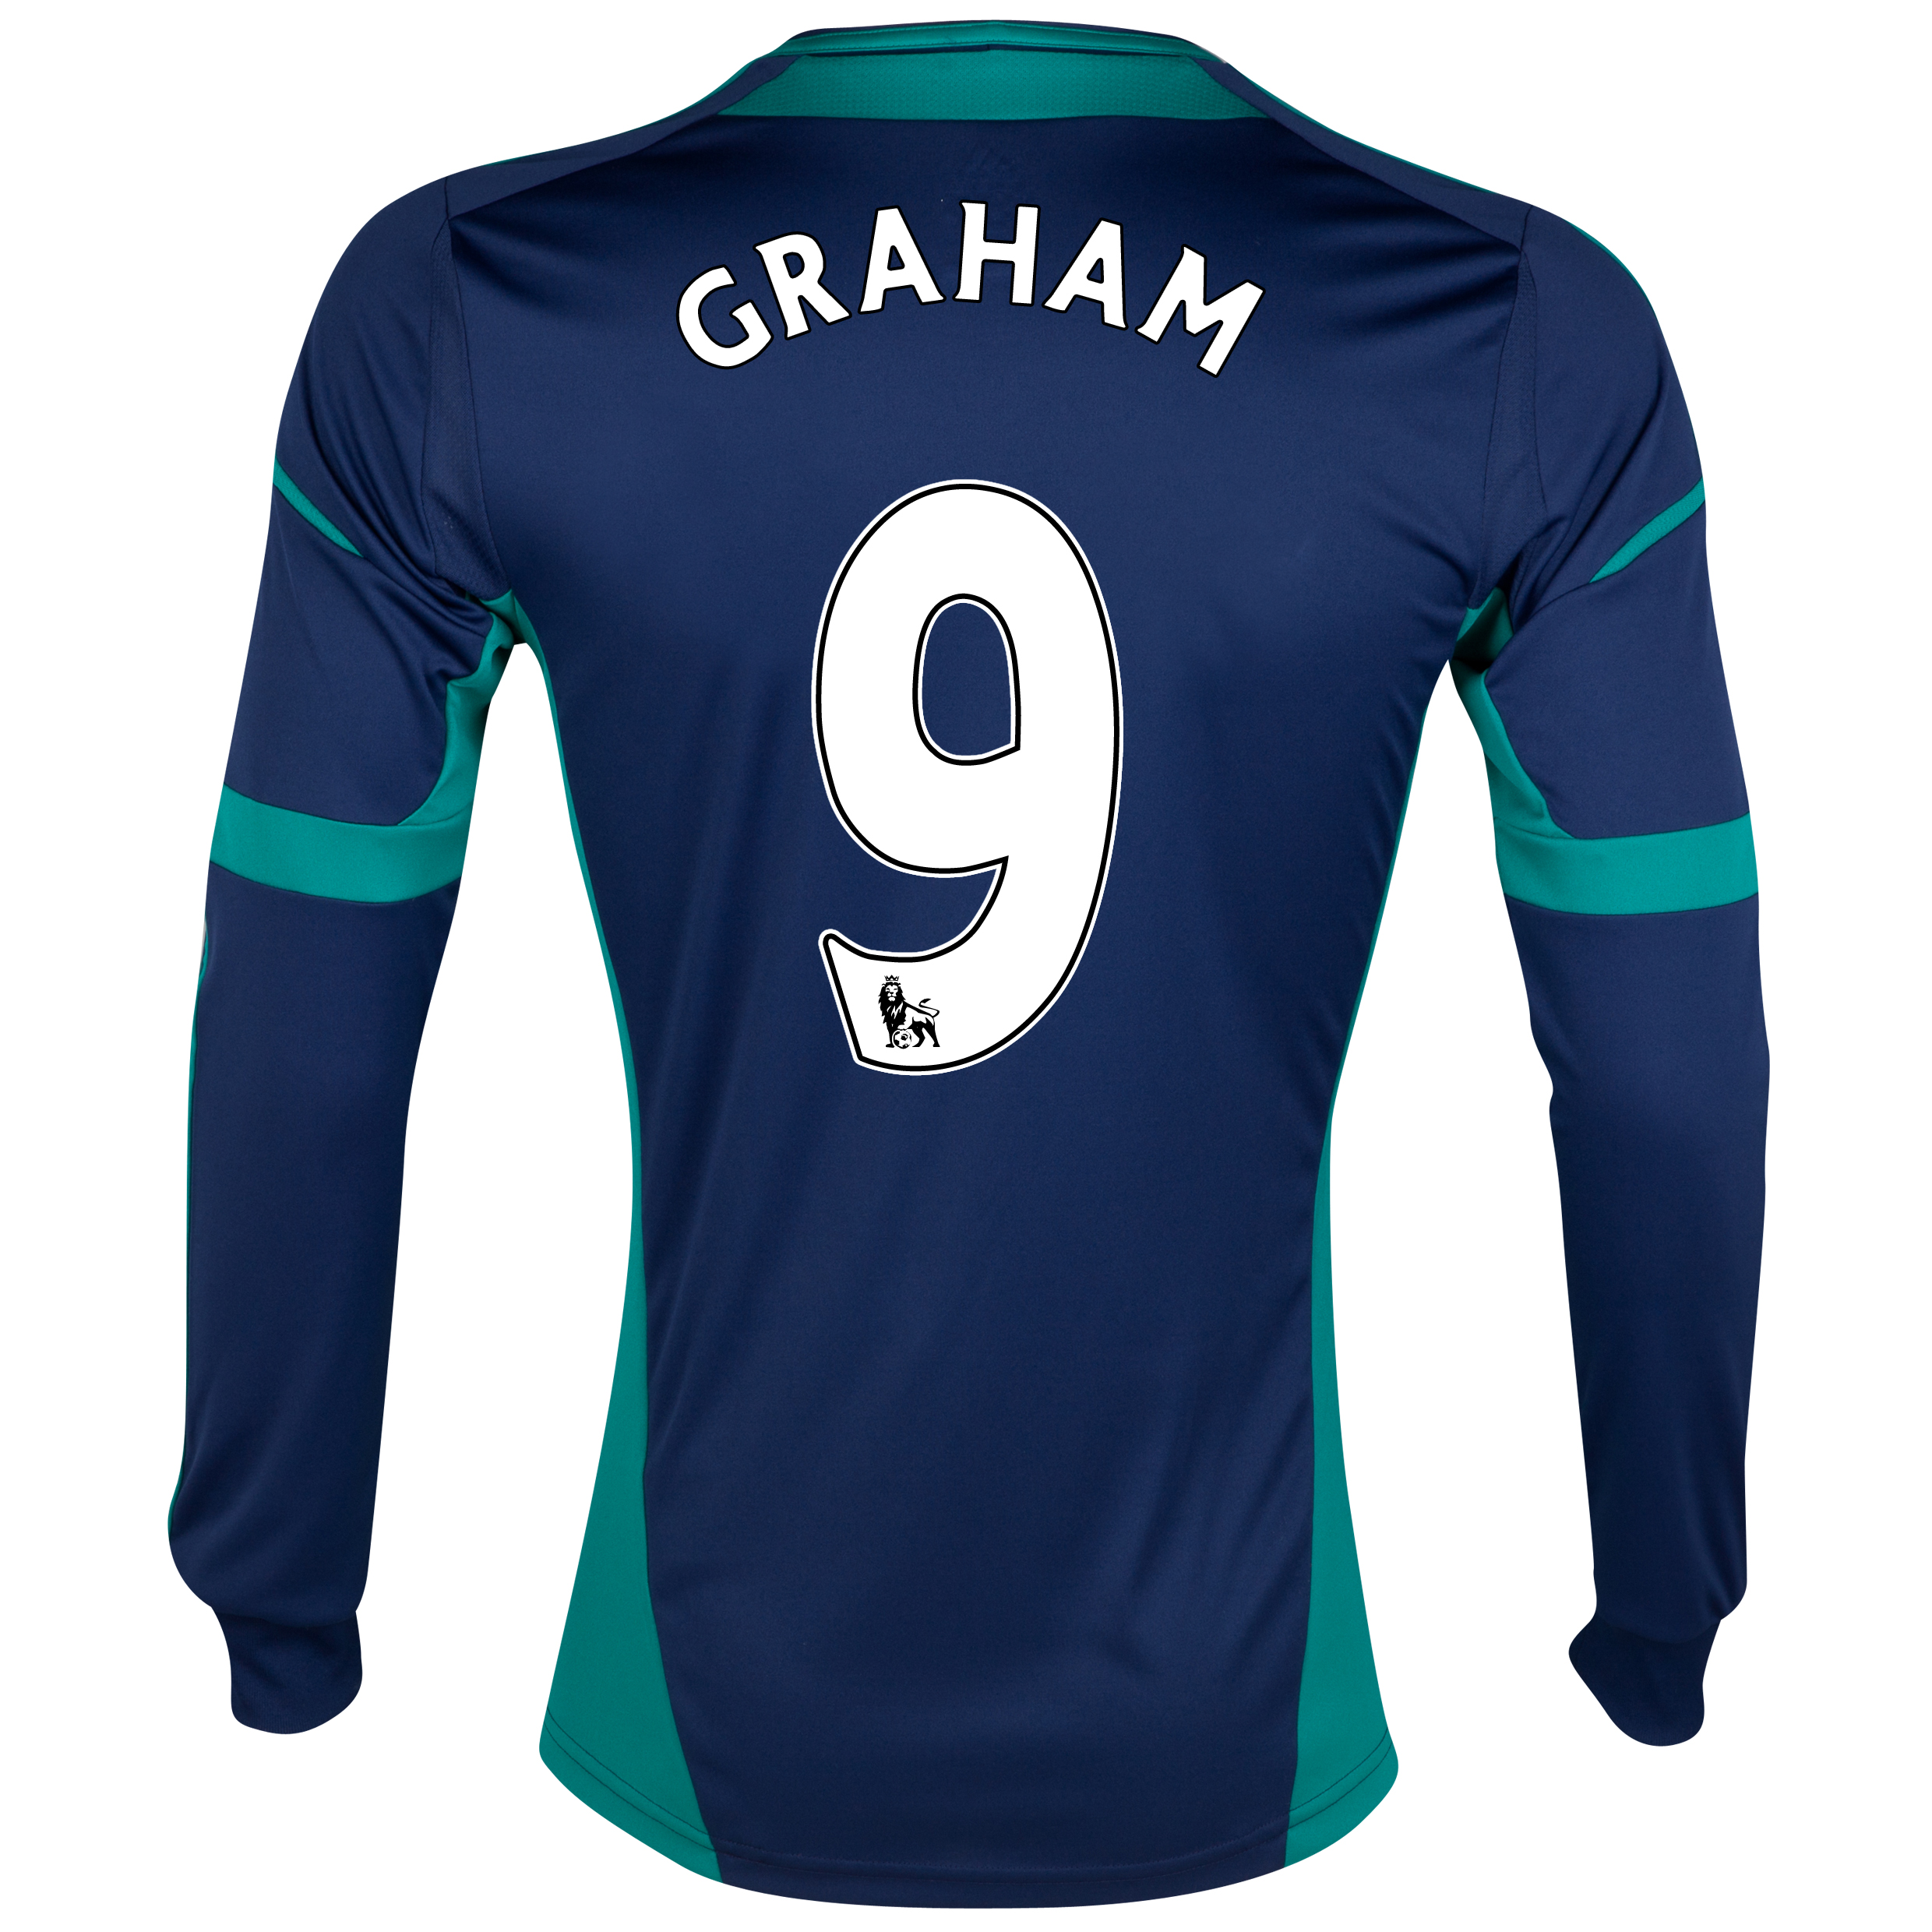 Sunderland Away Shirt 2012/13 - Long Sleeved with Graham 9 printing